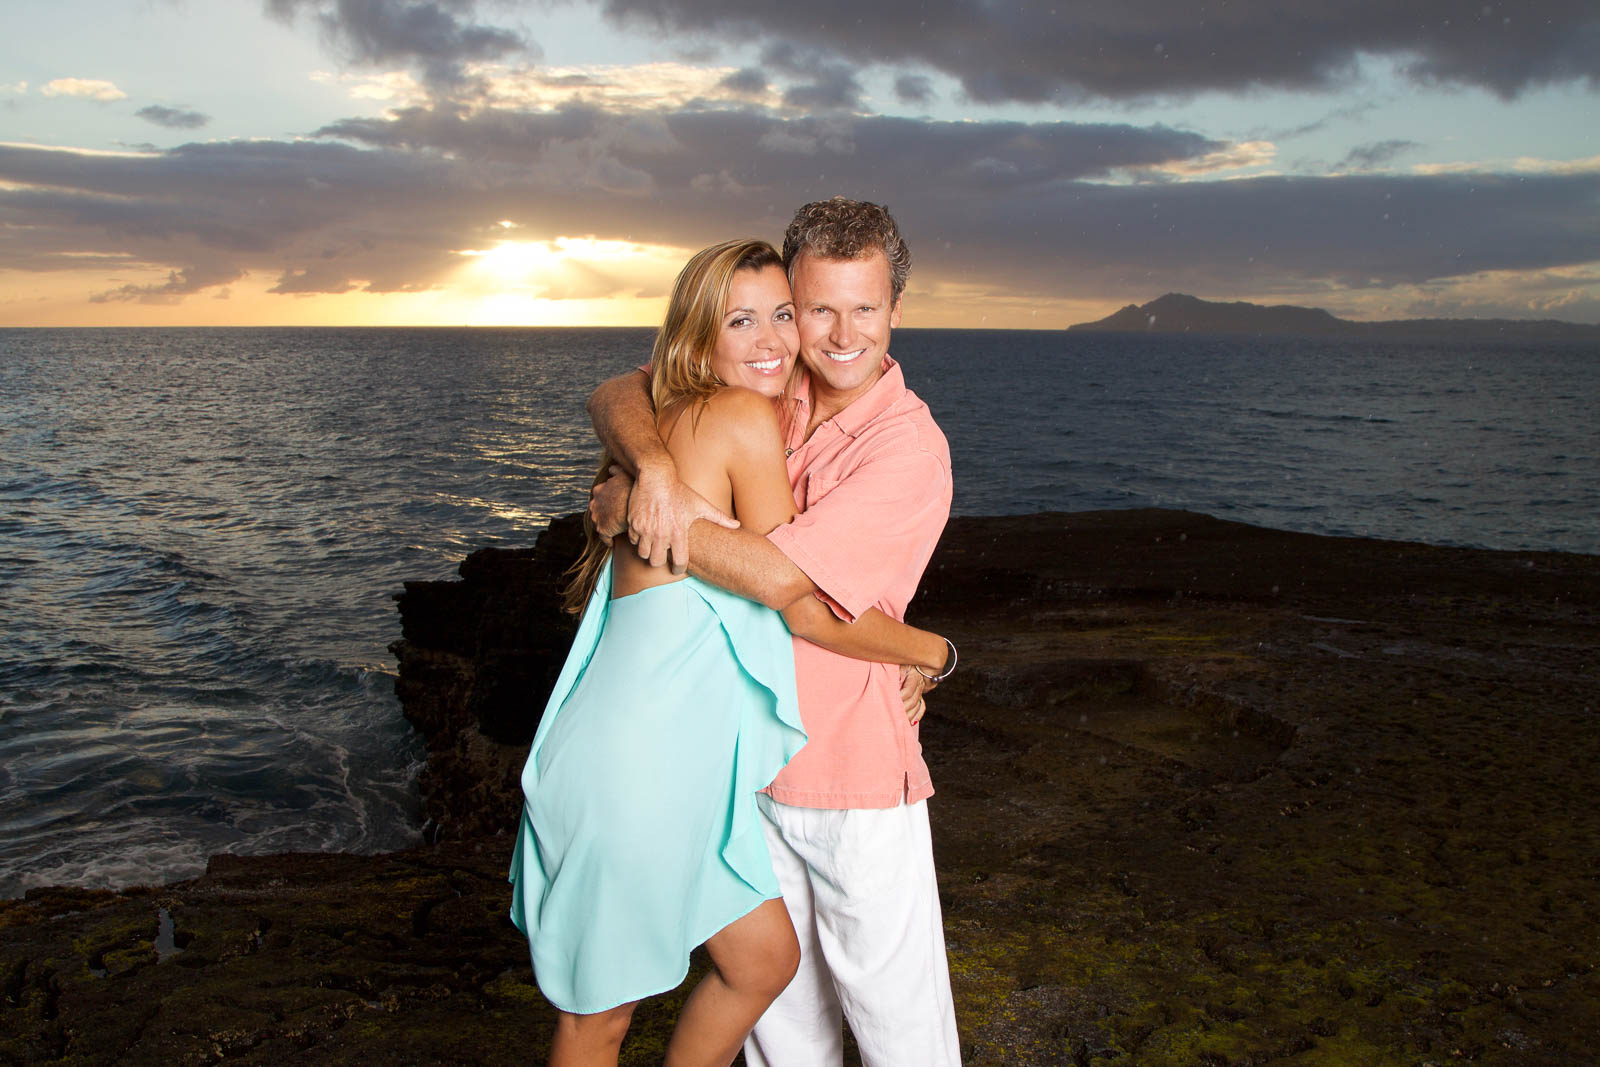 couples engagement portrait sunset oahu hawaii ocean